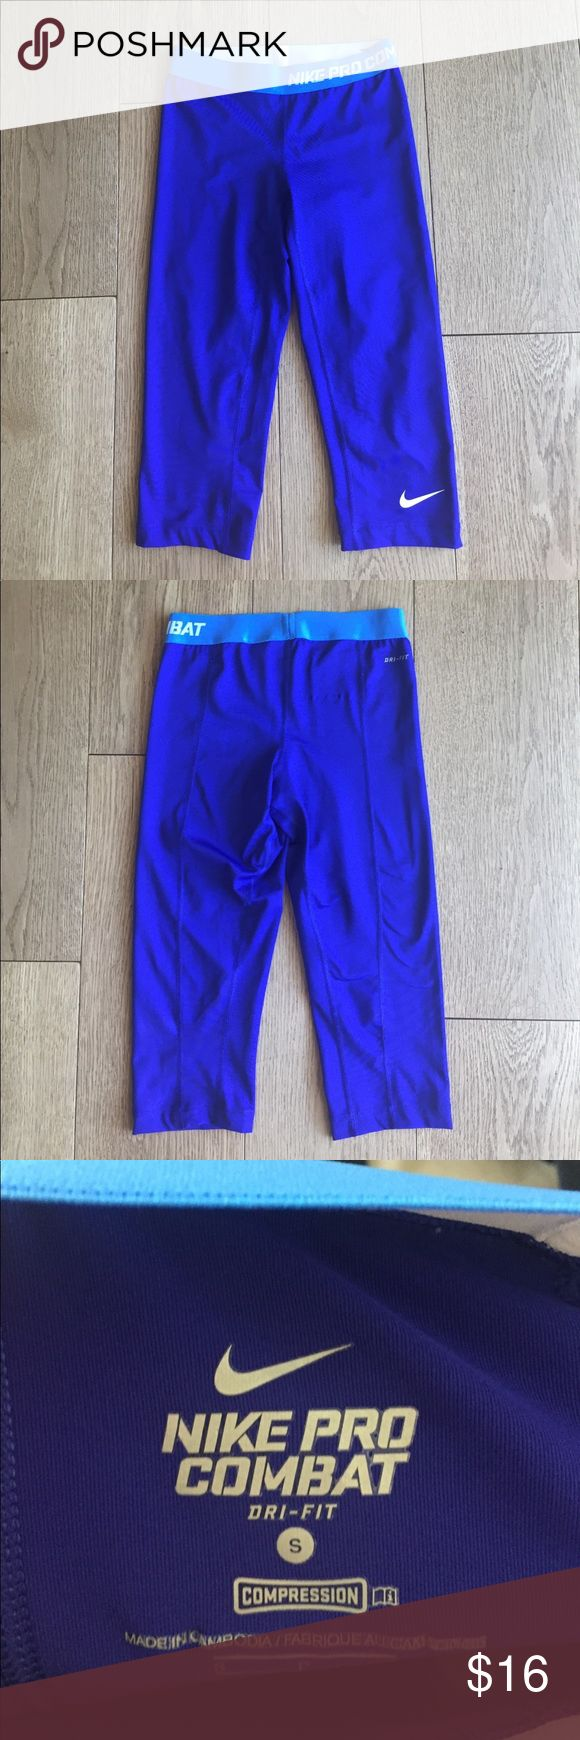 Nike Pro Combat Capris. Nike Combat Pro Capris. Perfect for workouts are running. In good condition. No holes tears or stains. Nike Pants Capris